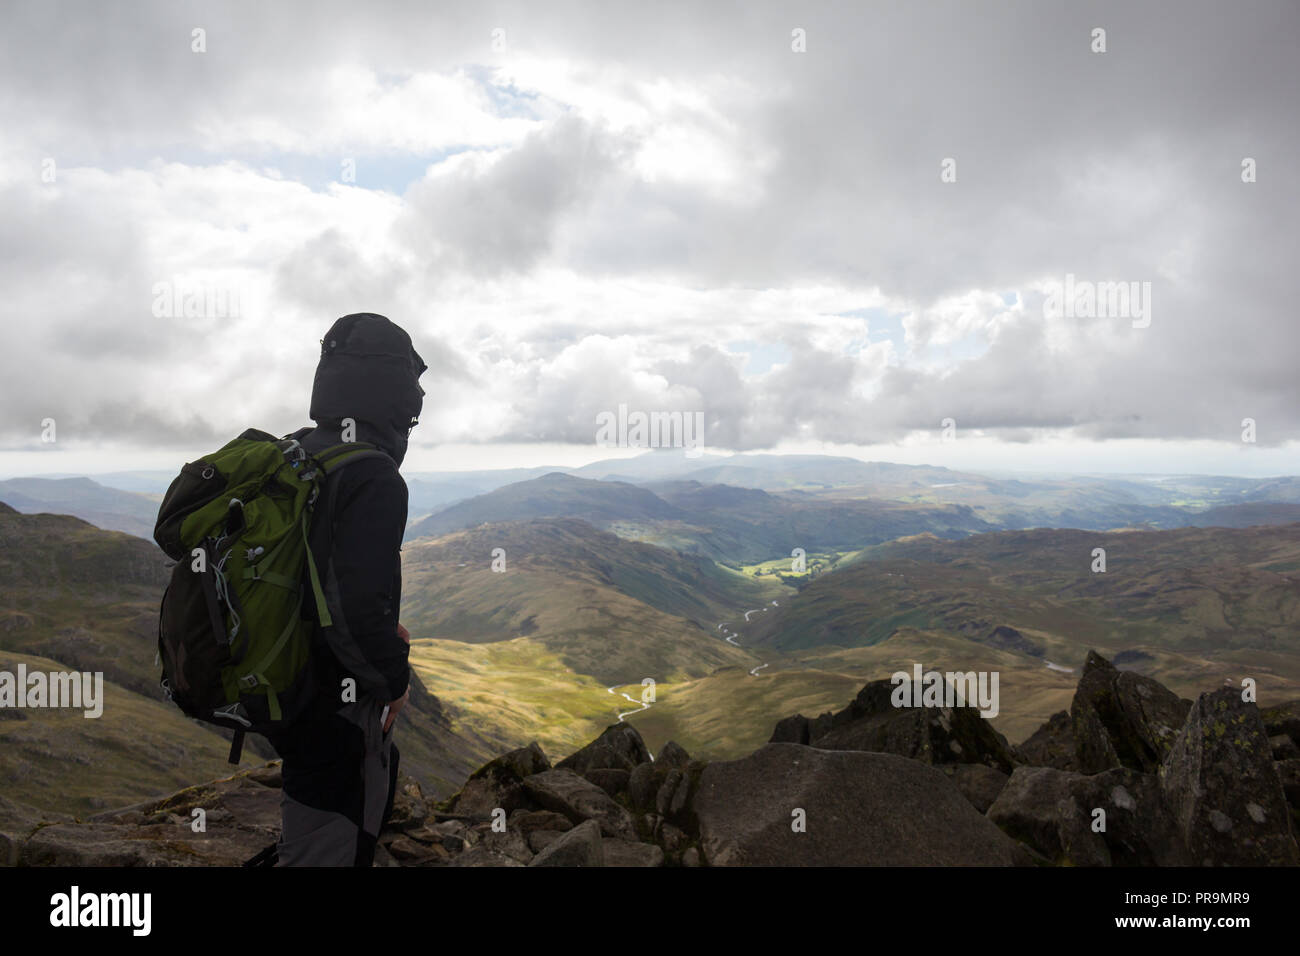 A hillwalker enjoying the view from the summit of Bowfell looking towards Hard Knott on a coudy day in the Lake District, Cumbria, England. - Stock Image